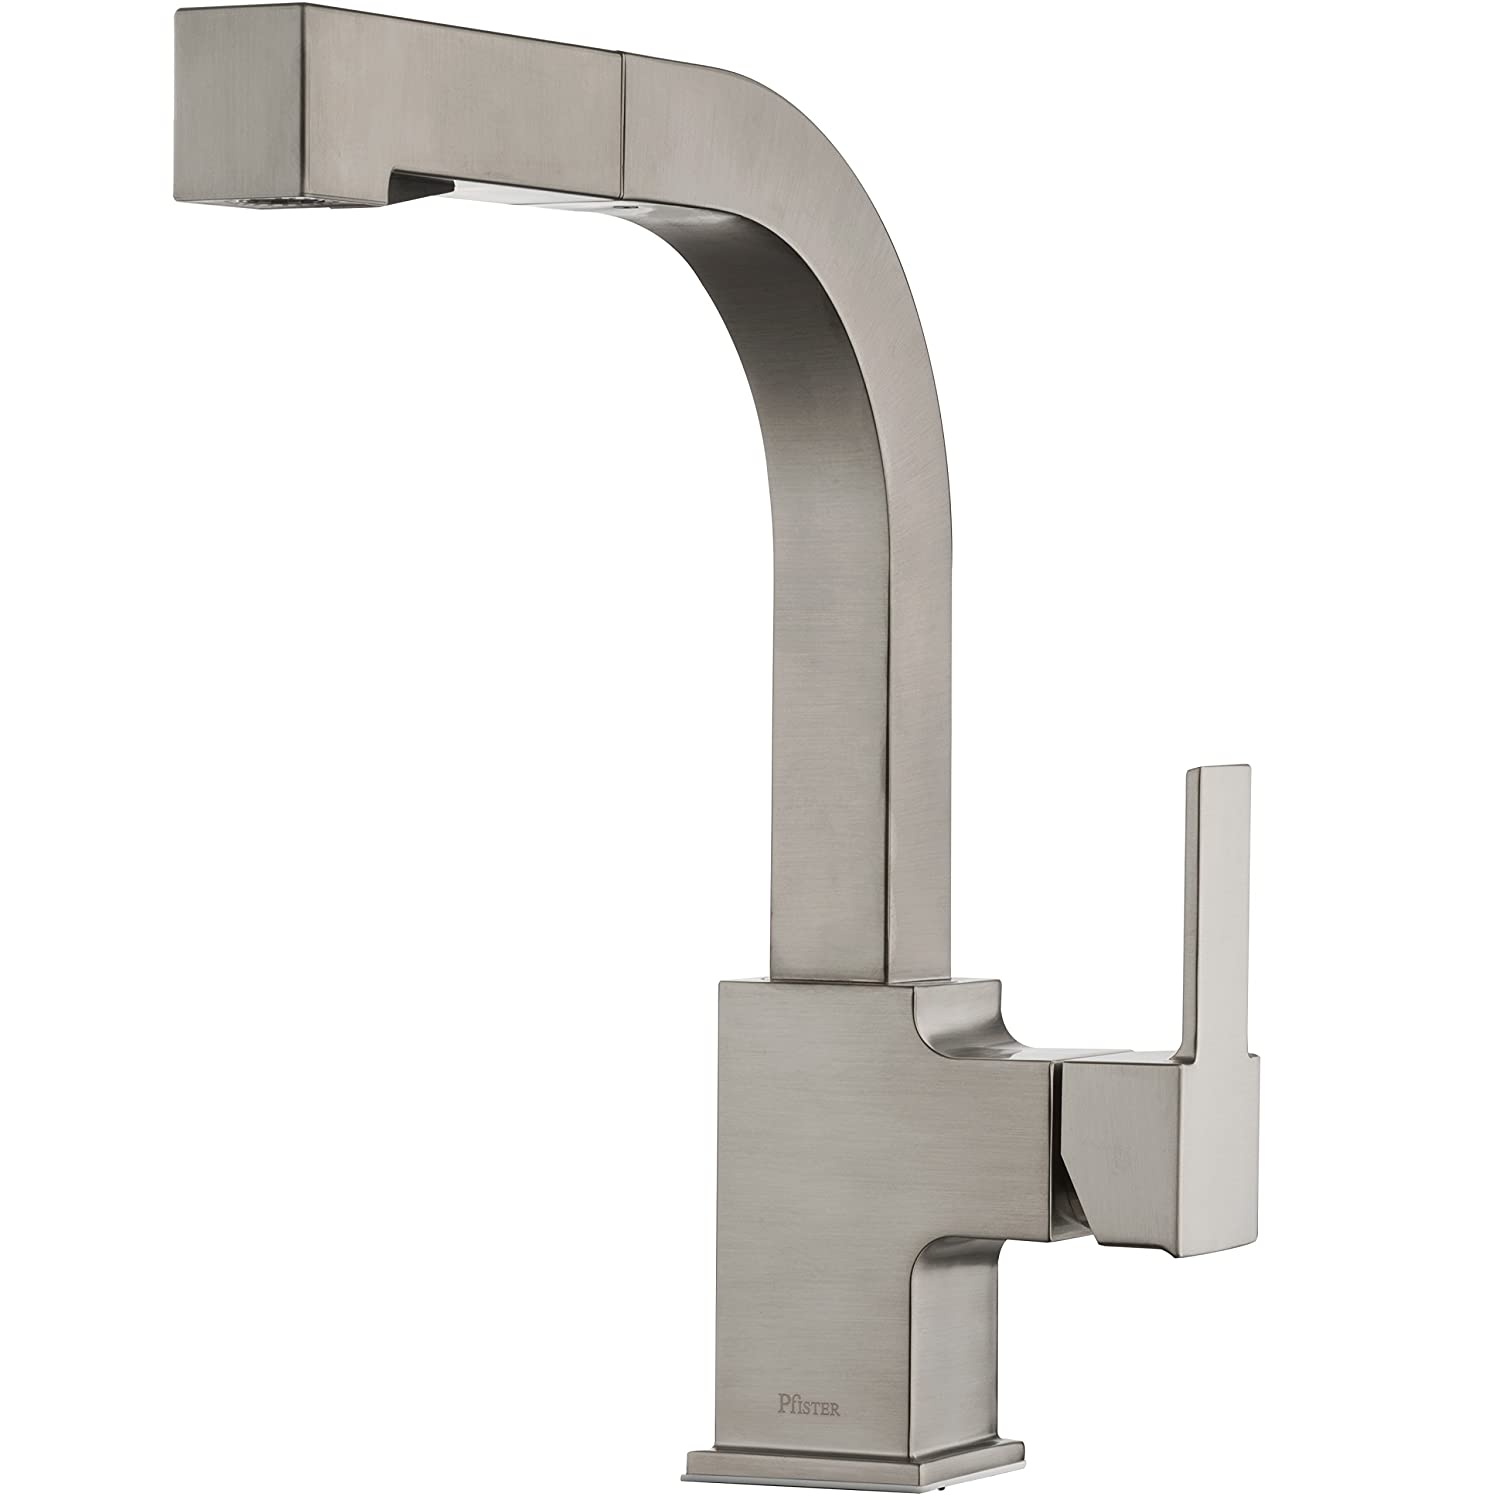 Pfister LG534-LPMS Arkitek Kitchen Faucet with Pull-Out Sprayhead, Stainless Steel - - Amazon.com